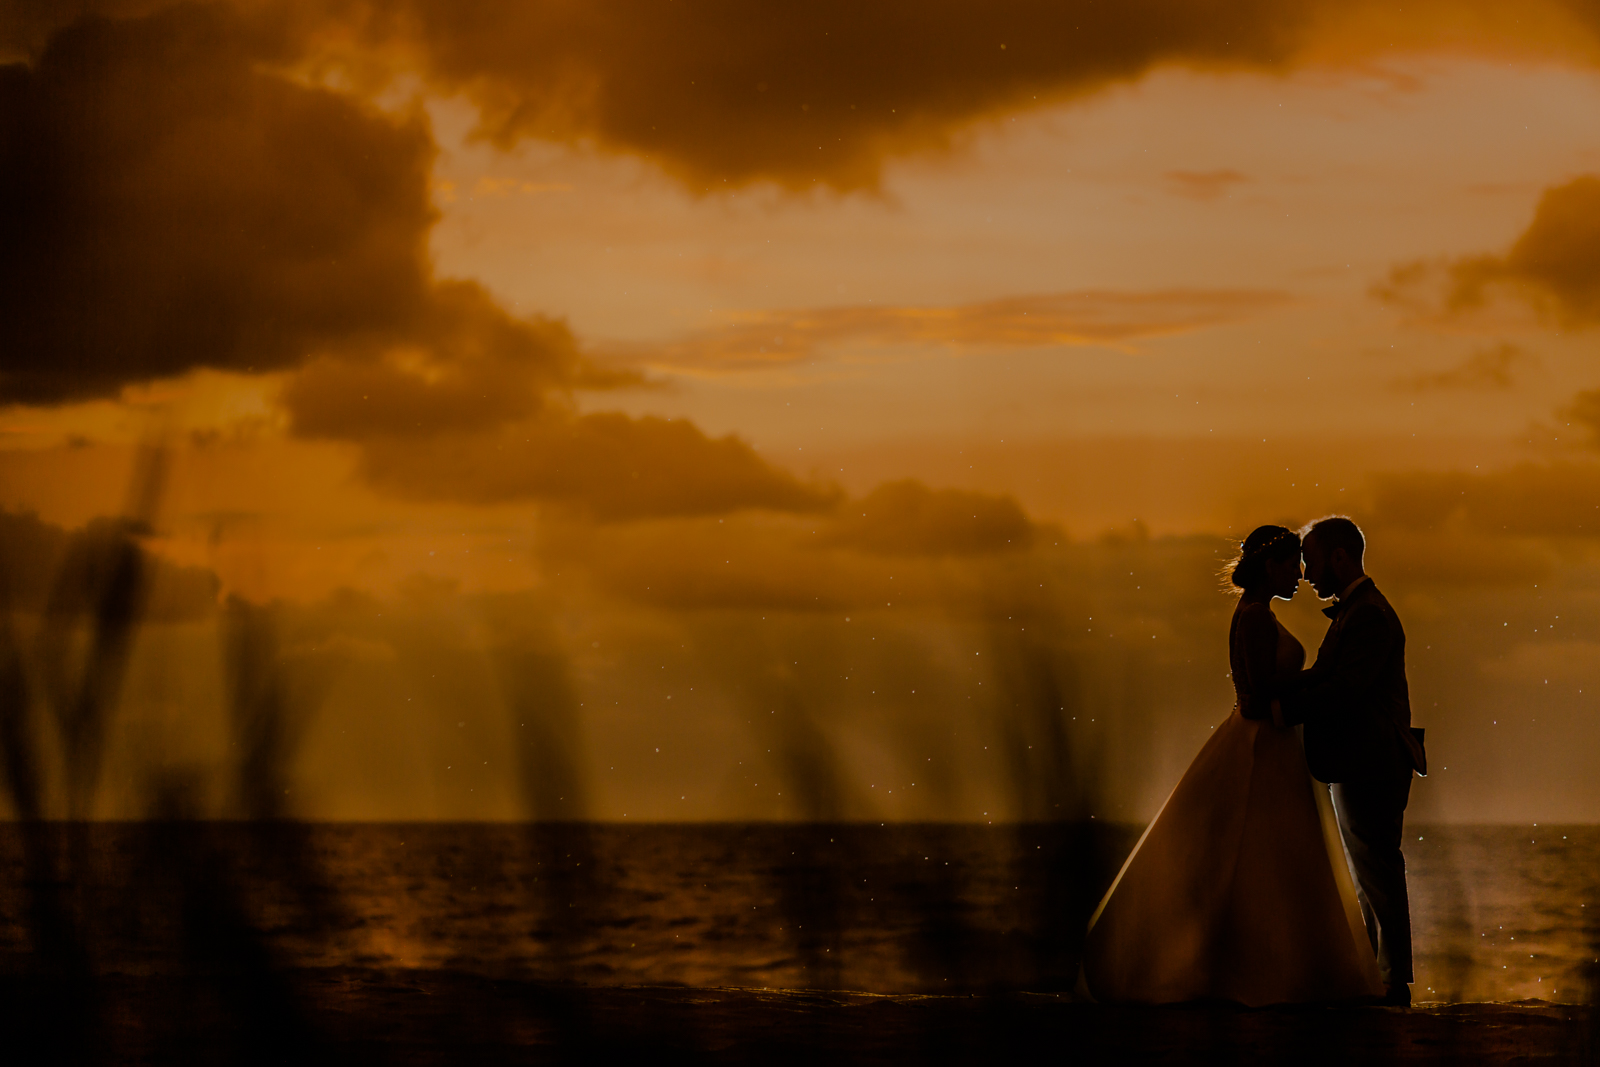 silhouette during the sunset with backlight, orange sky and ocean